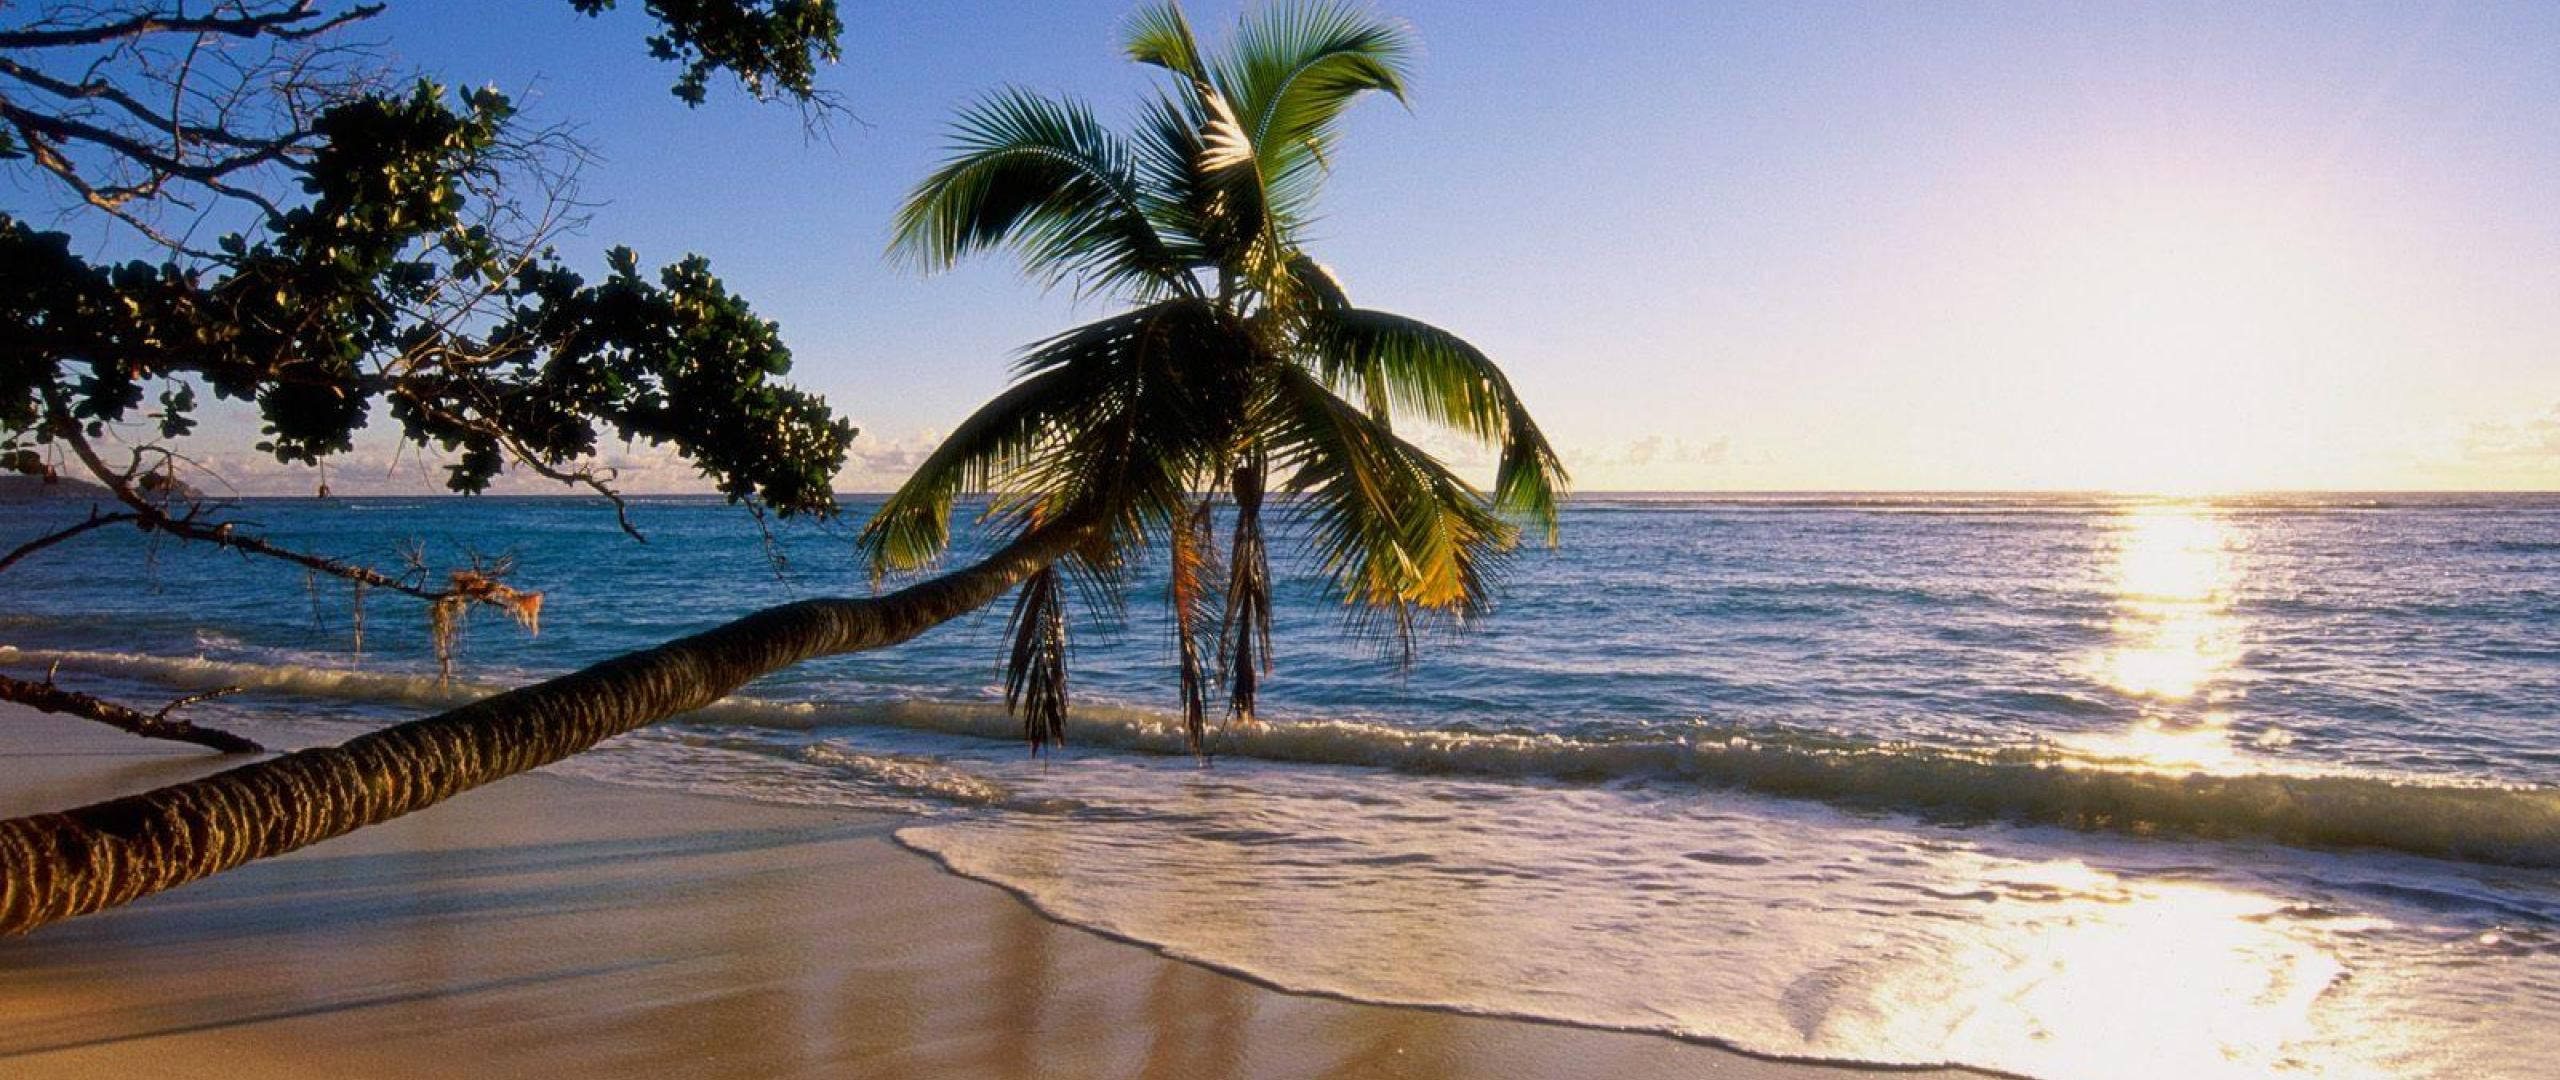 Paradise on earth wallpaper earth paradise on earth beach hd wallpapers desktop backgrounds - Paradise pictures backgrounds ...